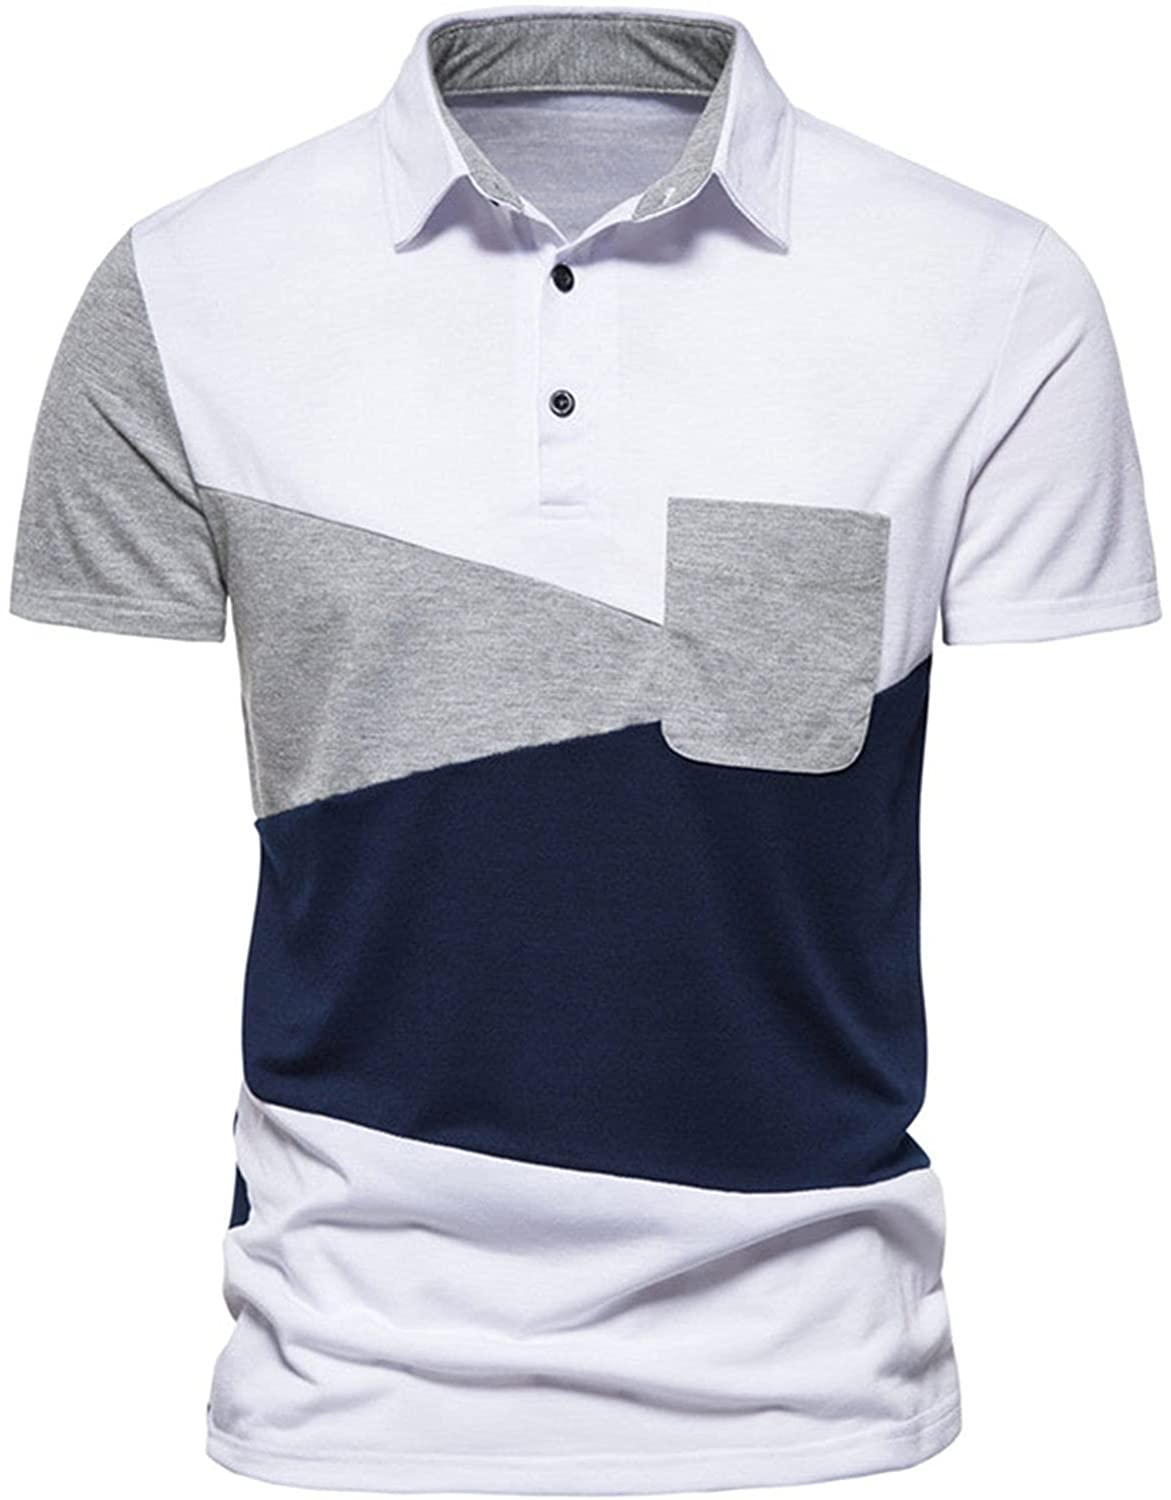 Price reduction Burband Men's Short free Sleeve Polo Casual Shirts Patchwork C Strech